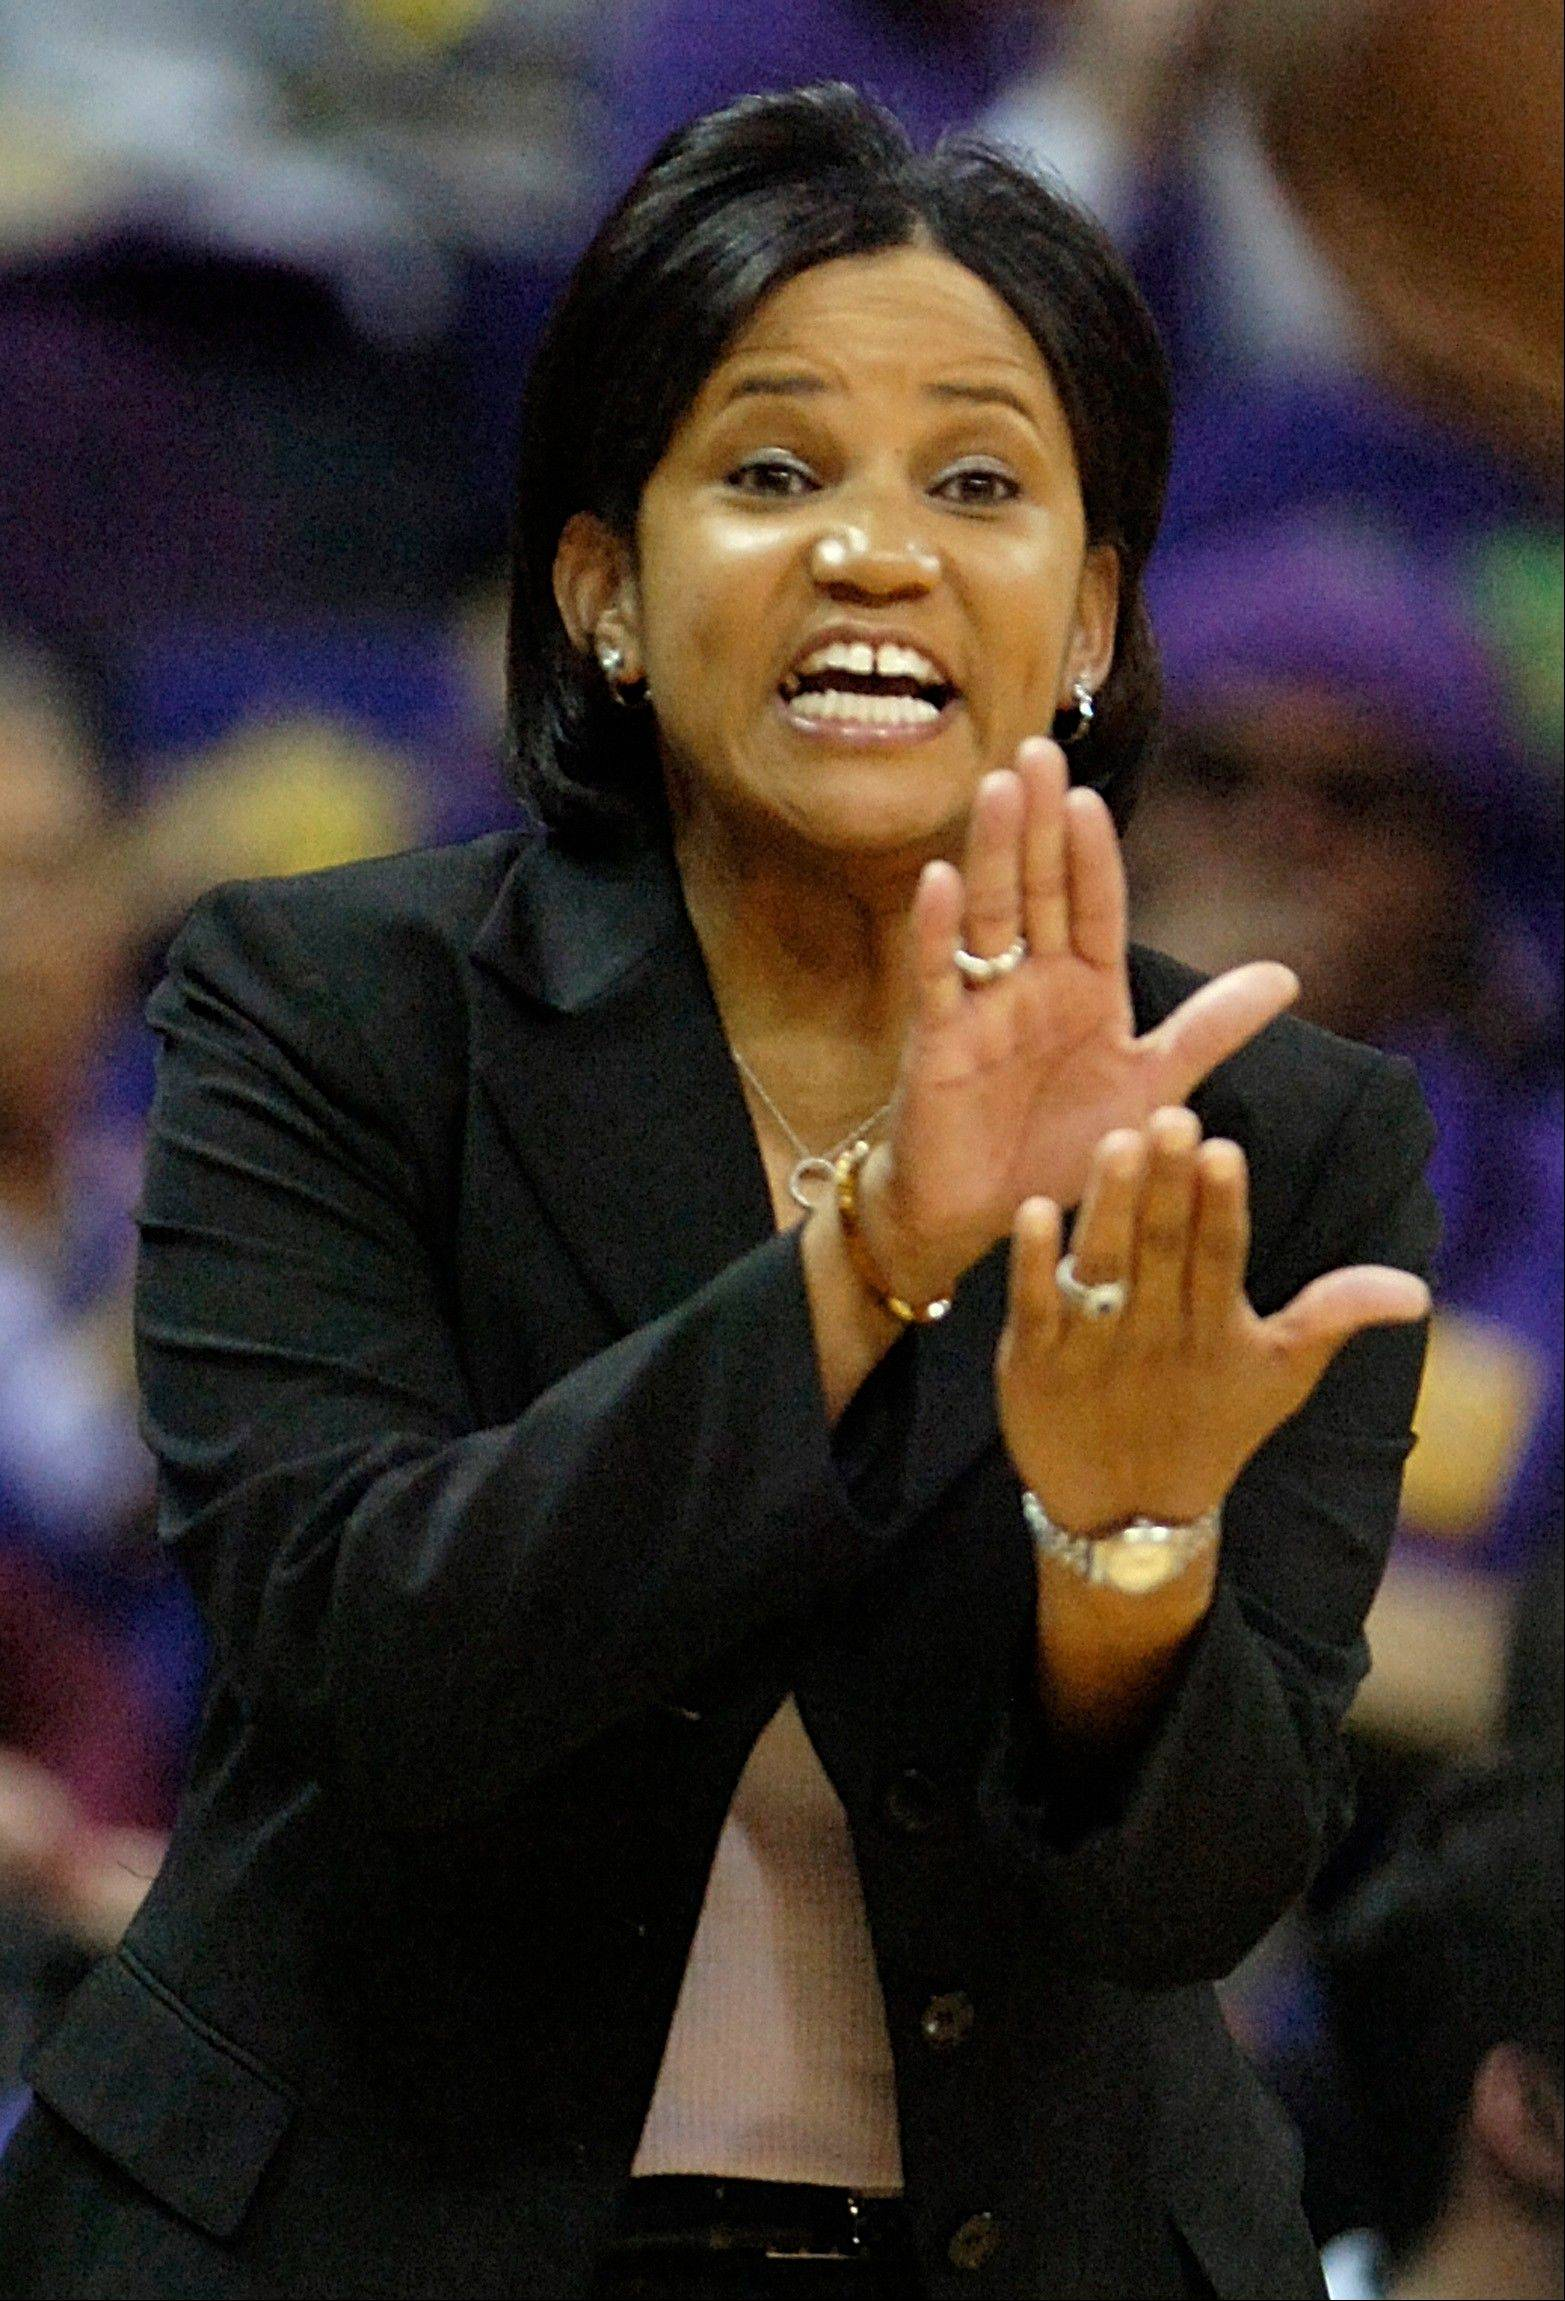 Coach Pokey Chatman received a multi-year contract extension Tuesday from the Chicago Sky. Her assistant coaches, Christie Sides and Jeff House, were also re-signed.